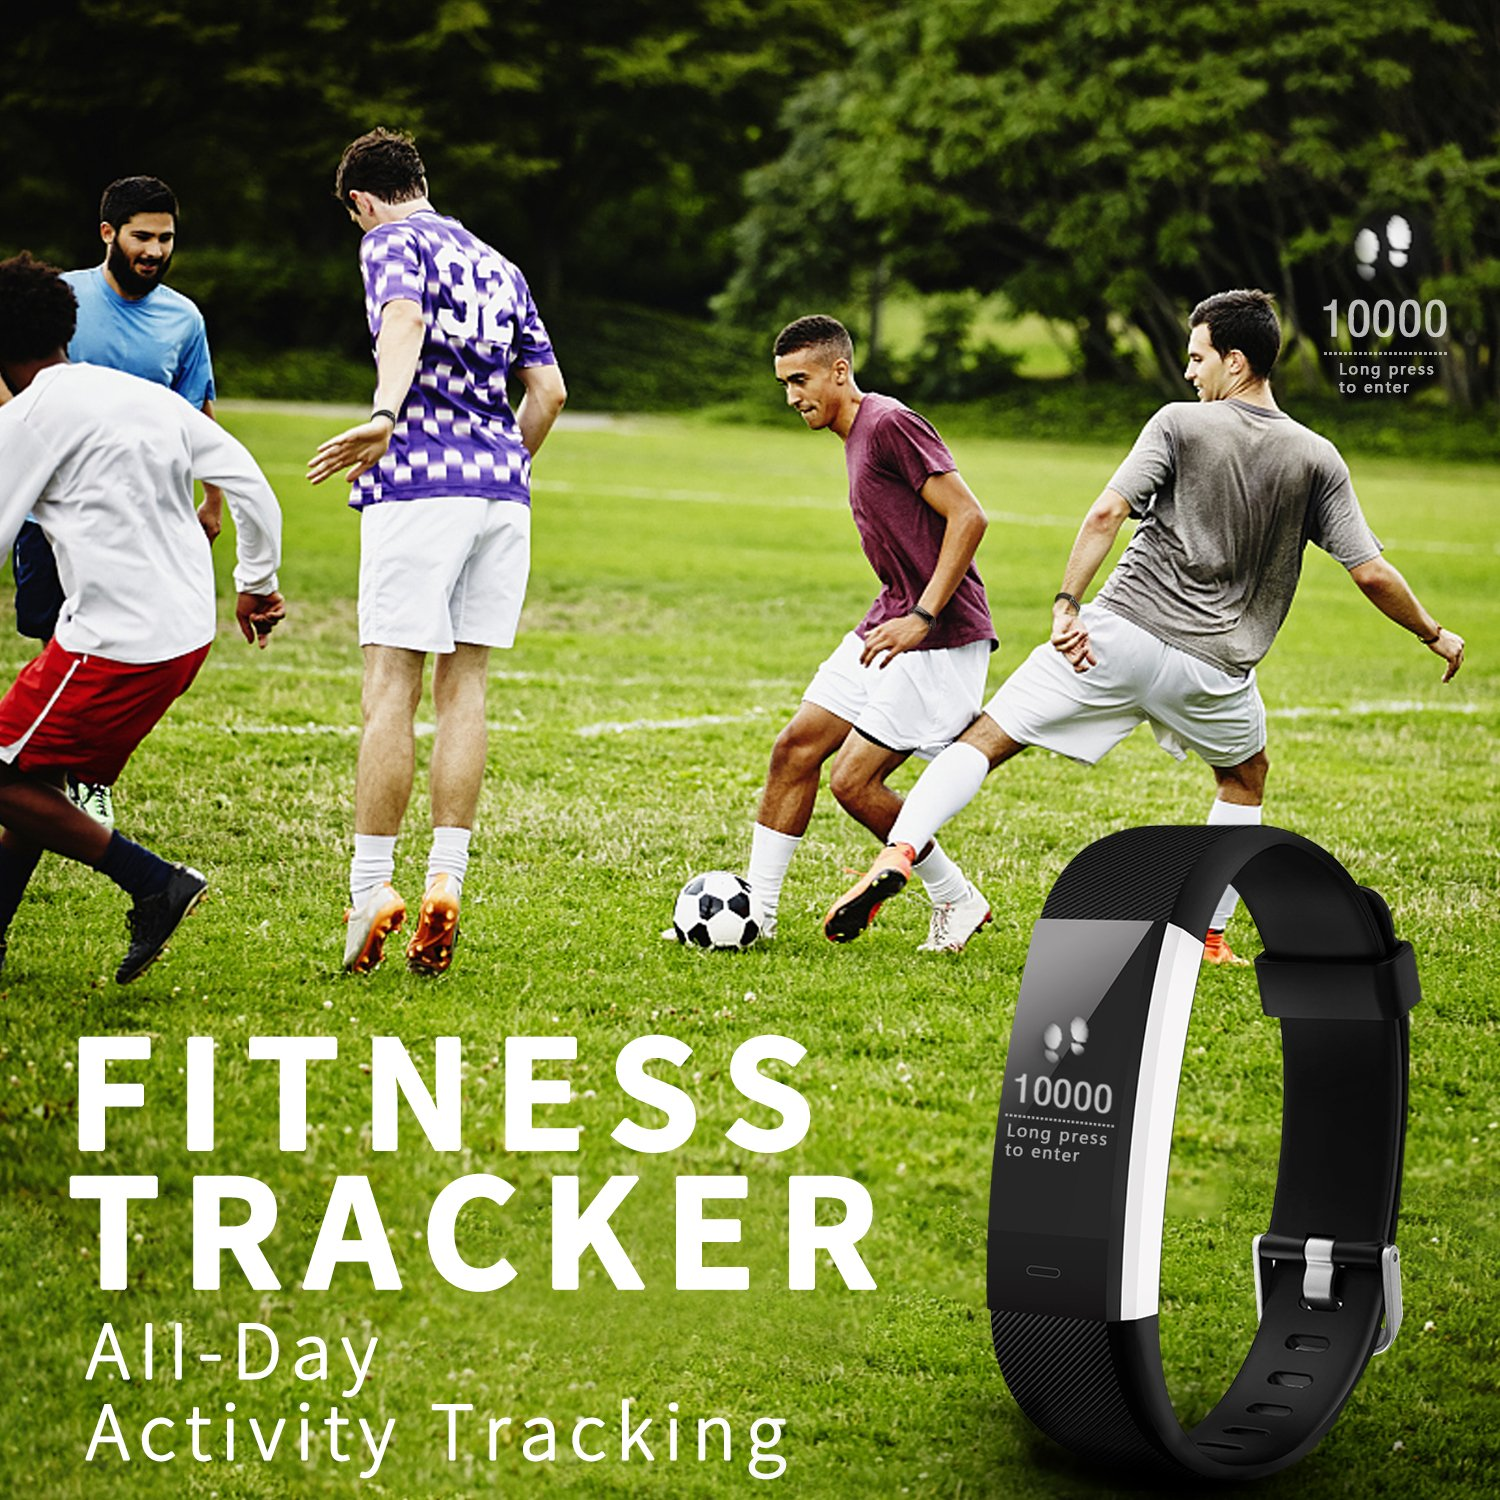 Fitness Tracker Activity Tracker Aneken Smart Band Heart Rate Sleep Monitor Waterproof Smart Bracelet Bluetooth Pedometer Wristband Smart Watches for Android and iOS Smart Phones by ANEKEN (Image #3)